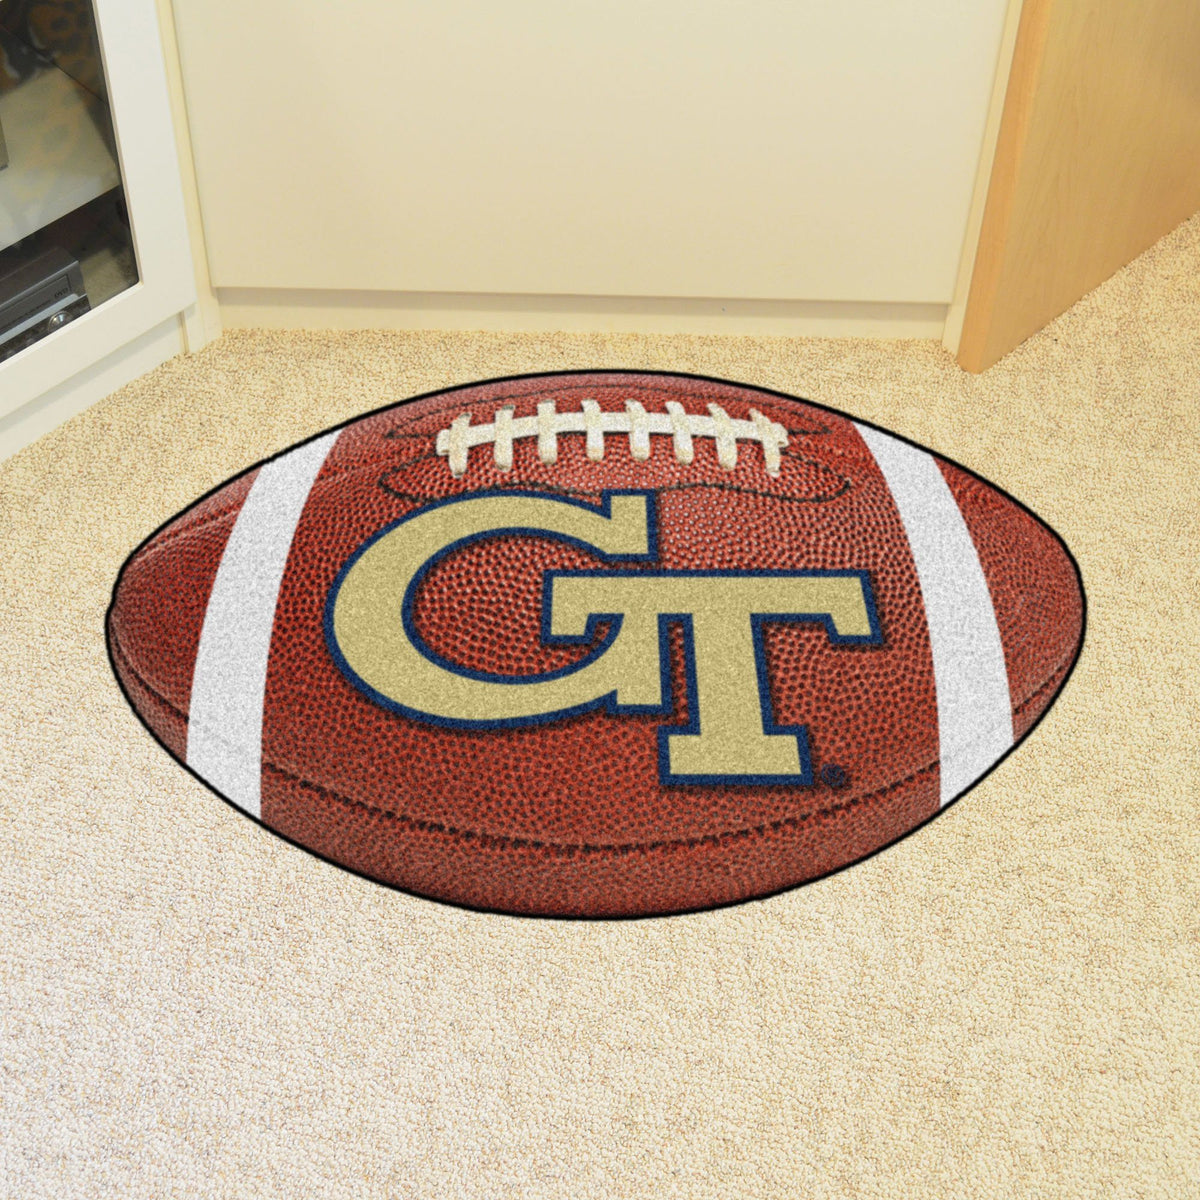 Collegiate - Football Mat: A - K Collegiate Mats, Rectangular Mats, Football Mat, Collegiate, Home Fan Mats Georgia Tech